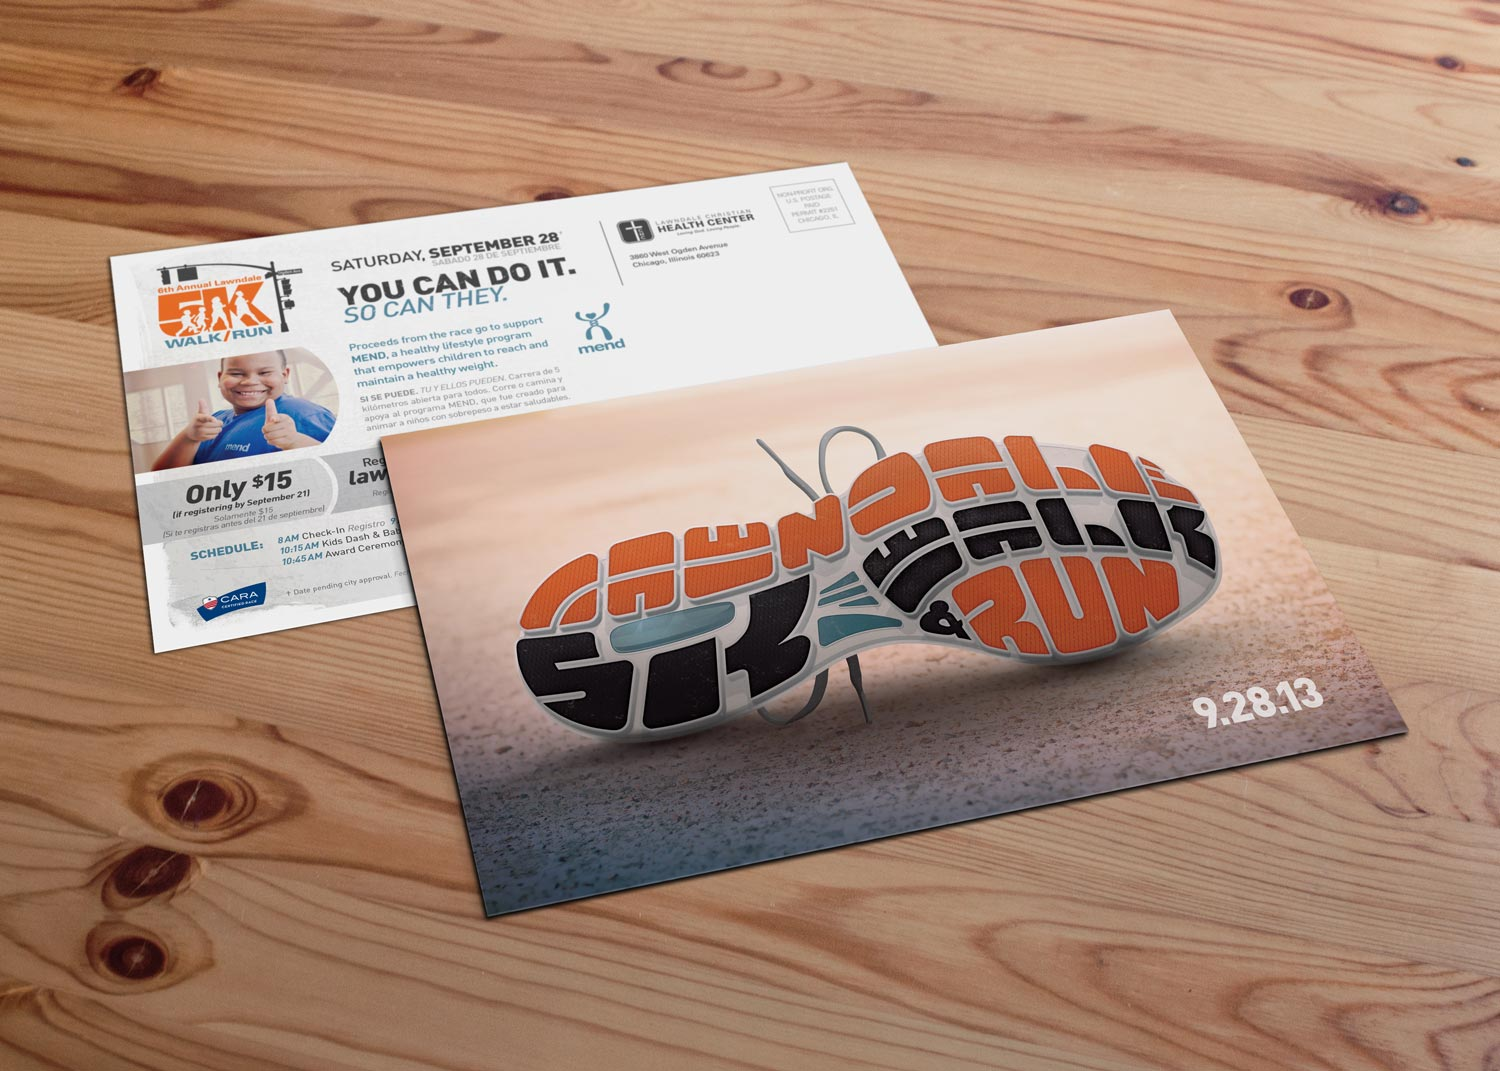 - For the direct mail postcard, I created a photorealistic version of the illustration to raise the wow factor. I reserved the flat version of the design for the posters and tech shirt to give them a cleaner look.